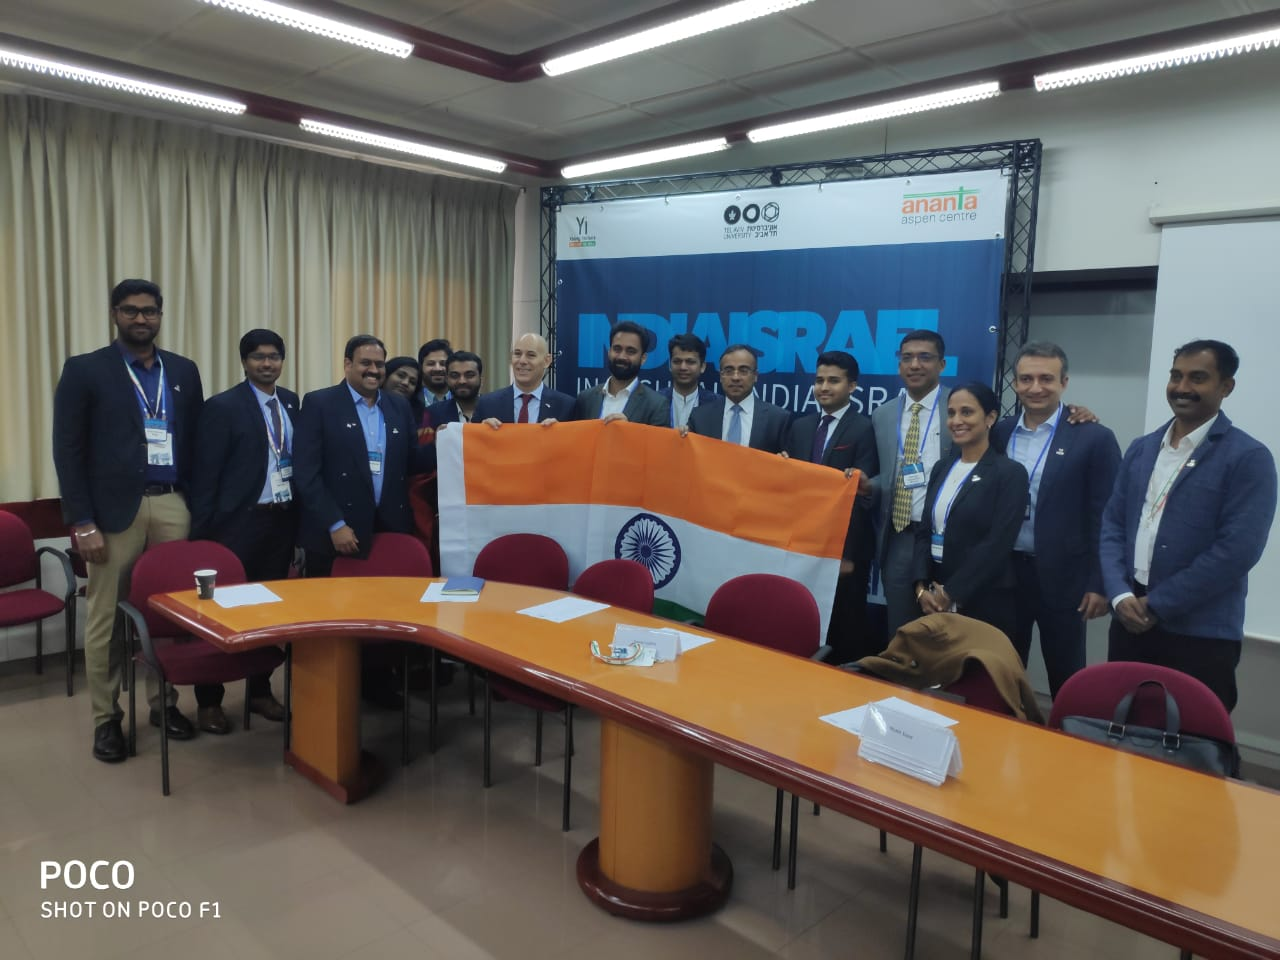 Young Indians Delegation to Israel. Inaugural India Israel Young leaders Forum @TelAviv University#Youngindians#telaviv#AnantaAspencentre #ciievents#India#Israel